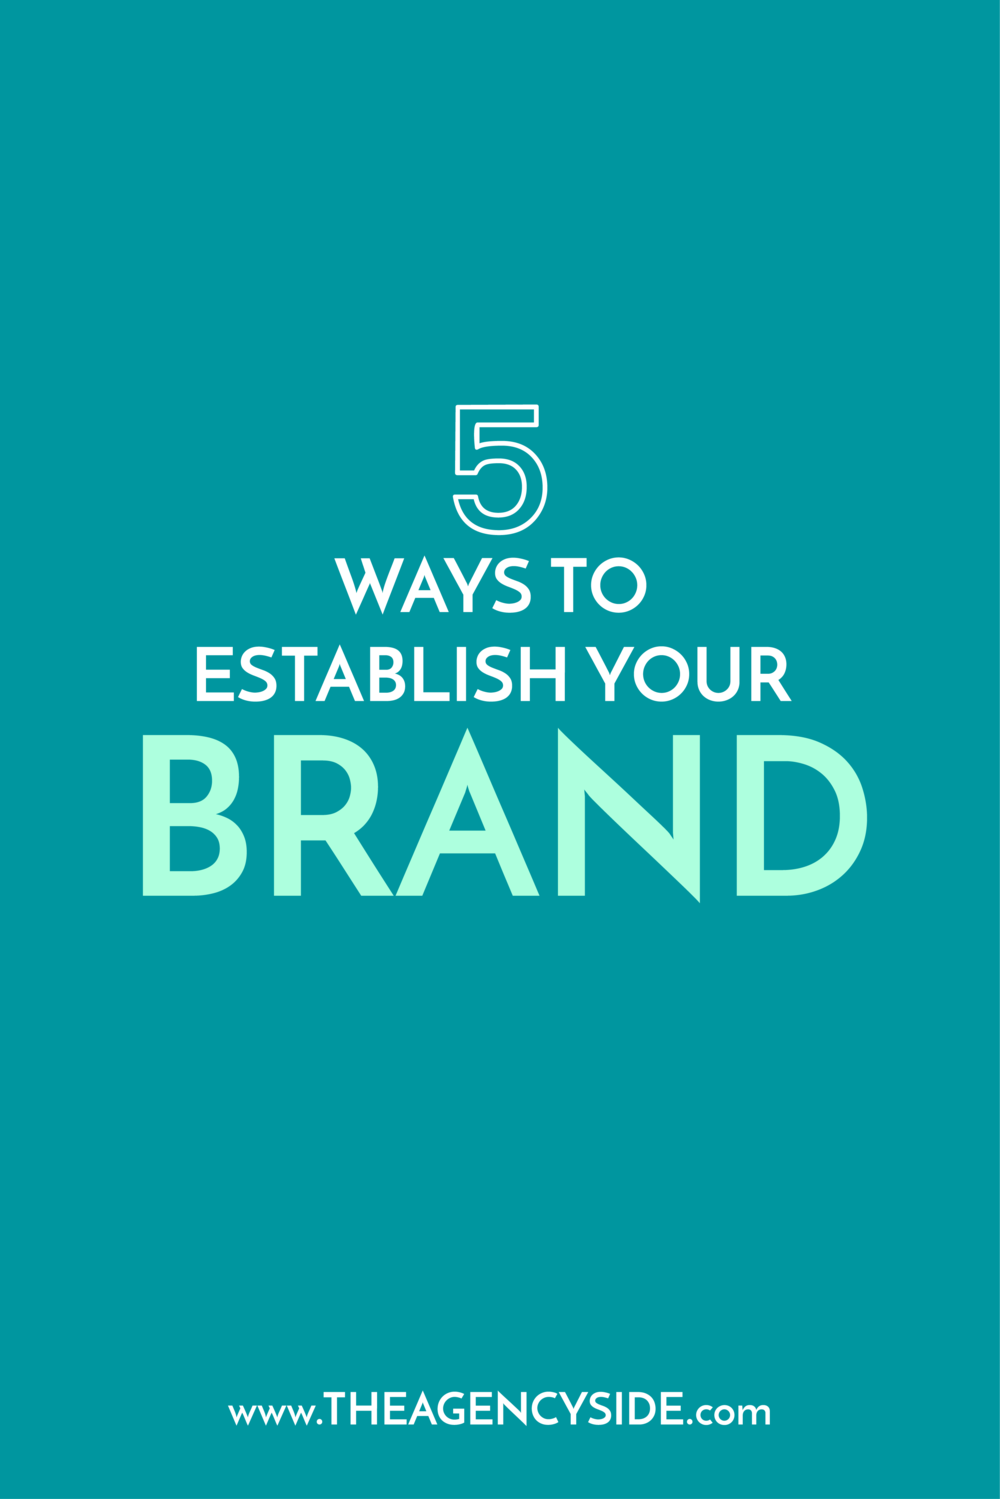 5 Ways to Establish Your Brand